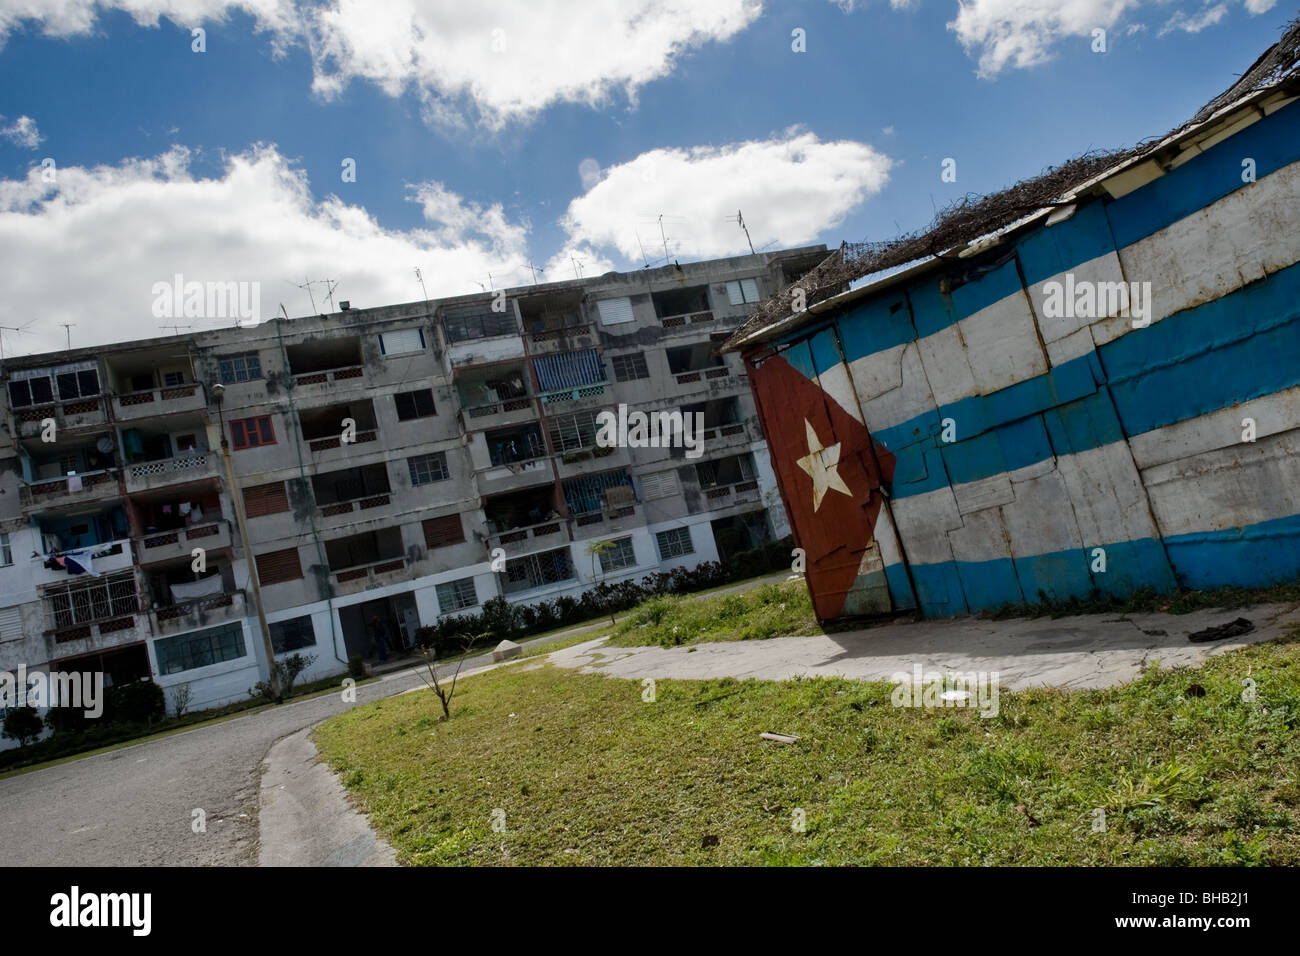 A Cuban national flag painted on a shack in Alamar, a huge public housing complex in the Eastern Havana, Cuba. - Stock Image